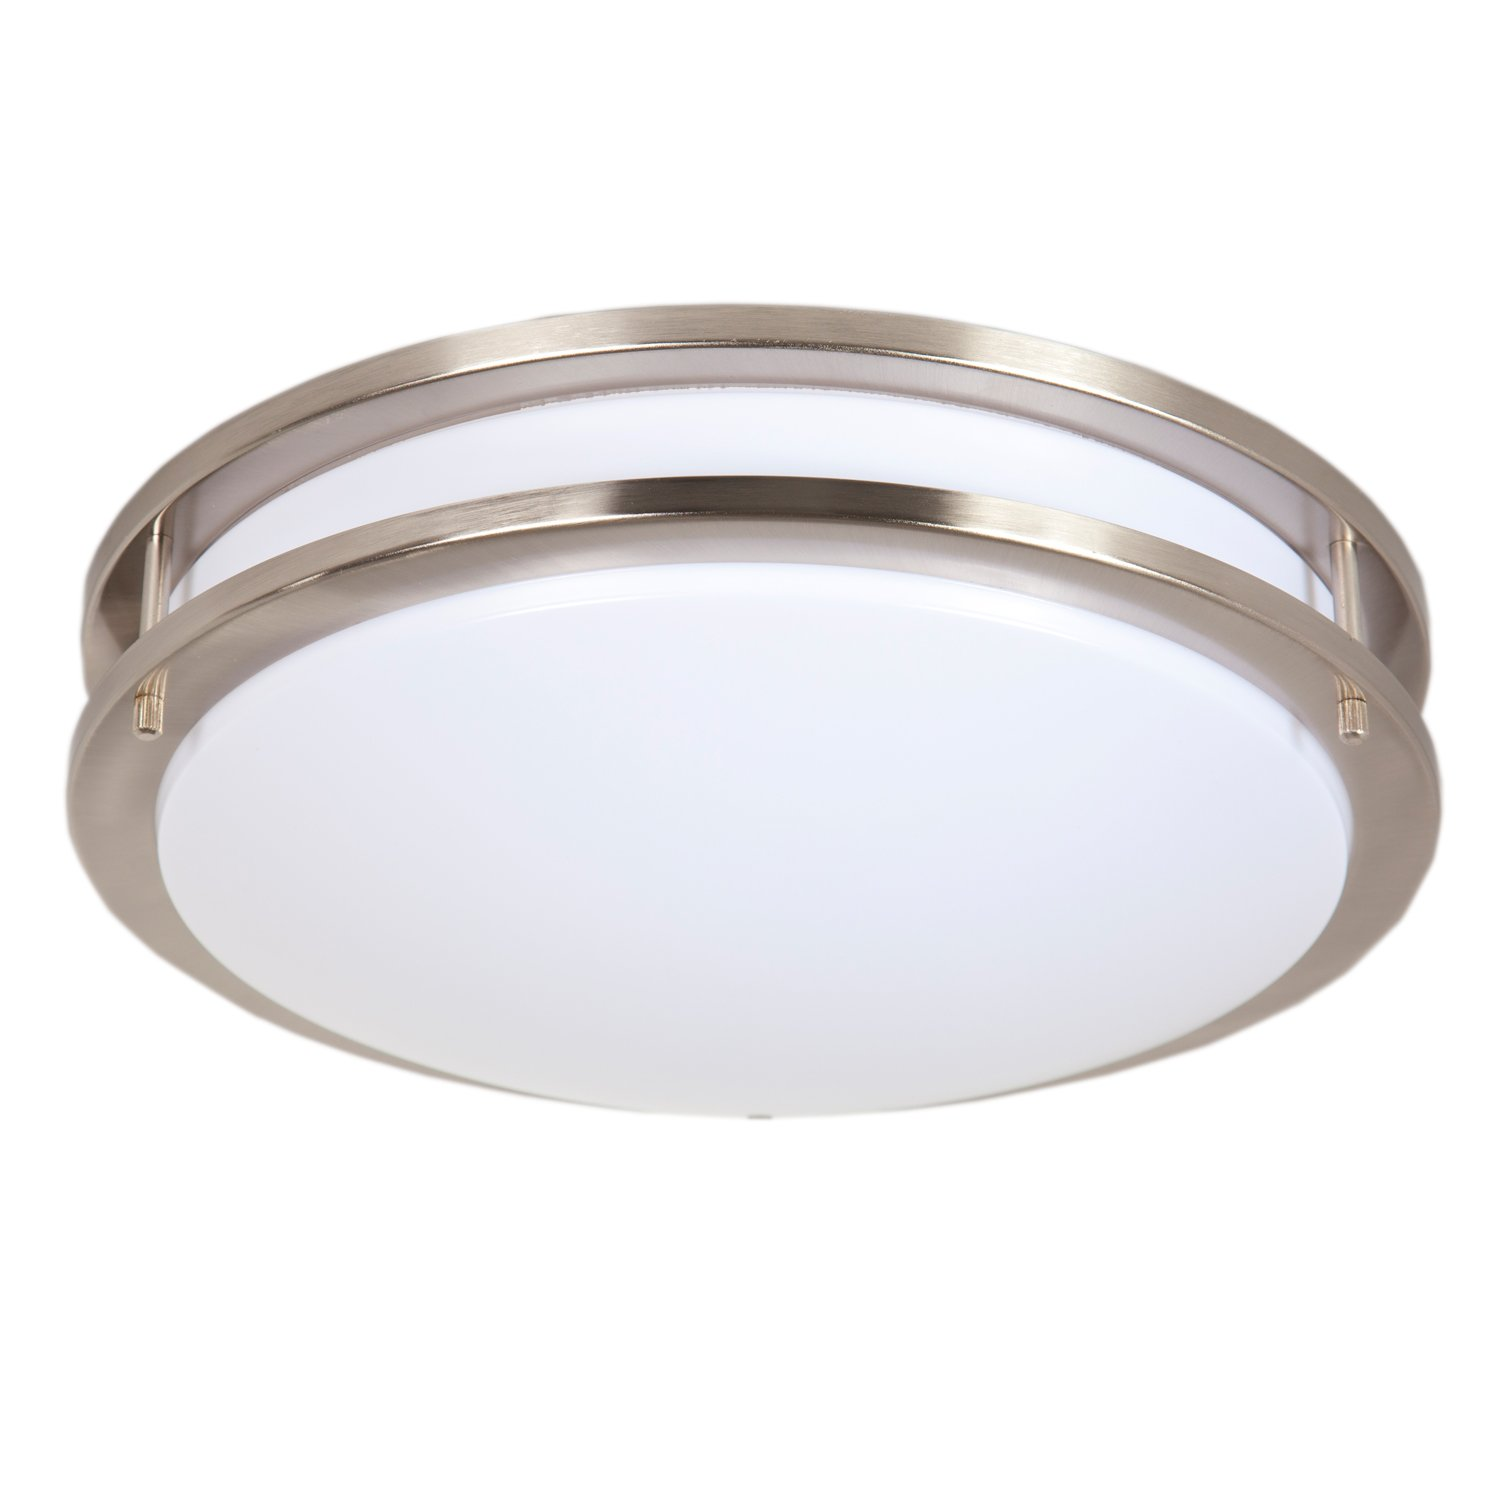 """Maxxima 14"""" Satin Nickel LED Ceiling Mount Light Fixture - Warm White, 1650 Lumens Dimmable, 3000K"""